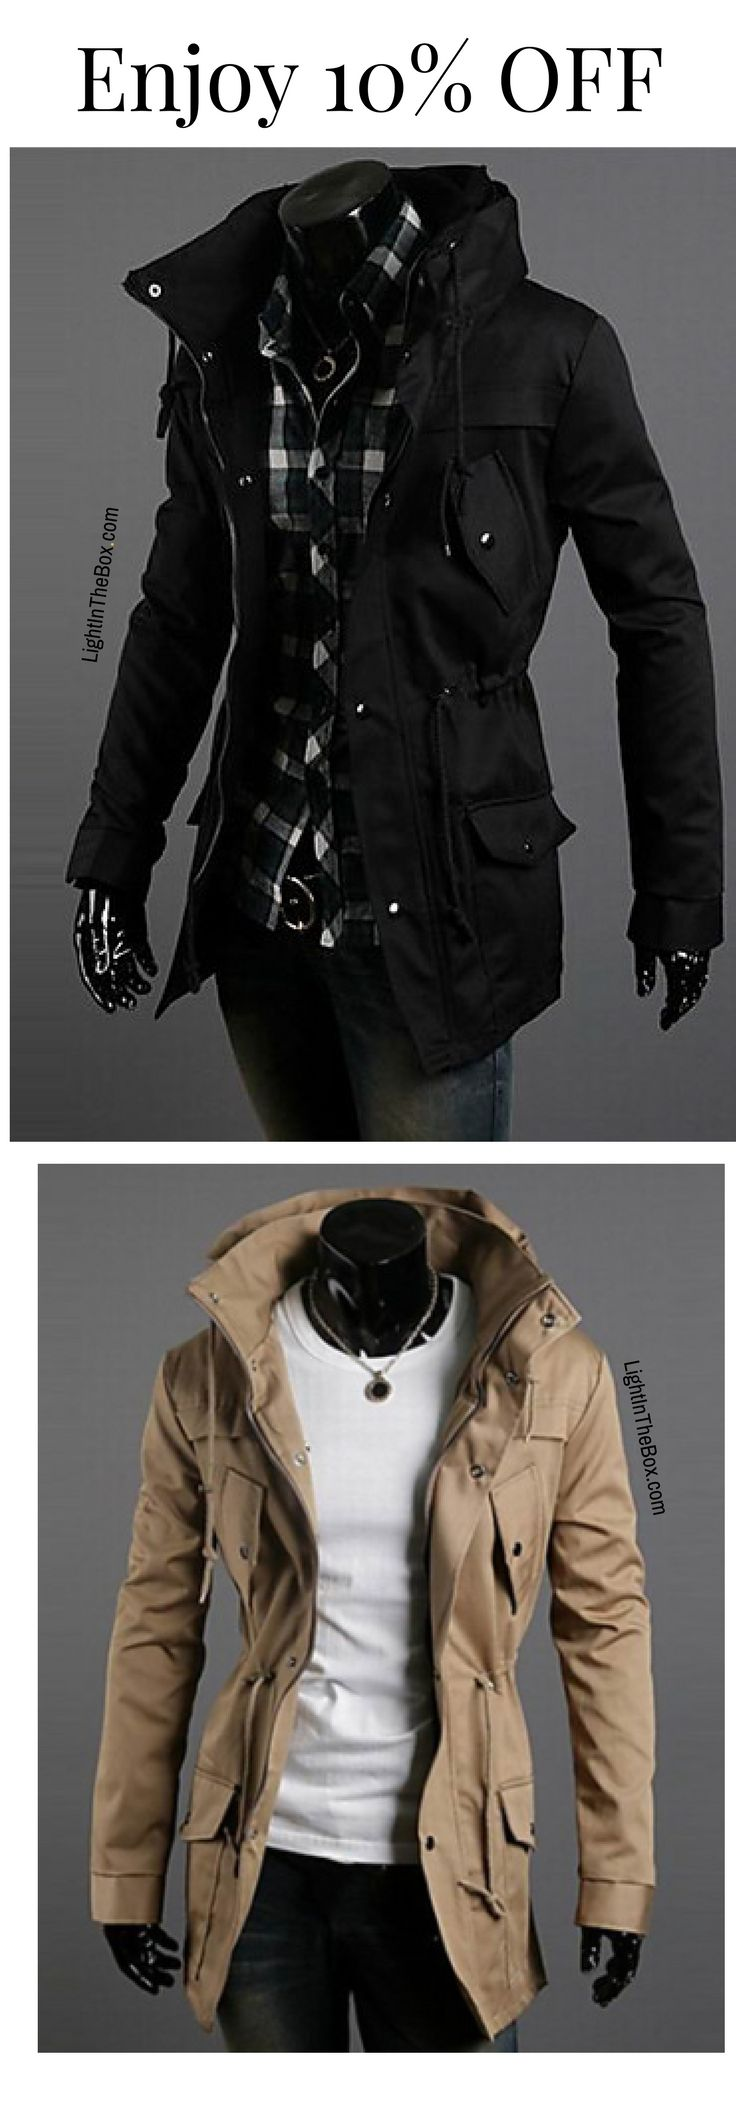 Warm sporty double high collar men wind proof jacket in black, brown, navy blue colours at just $29.69.